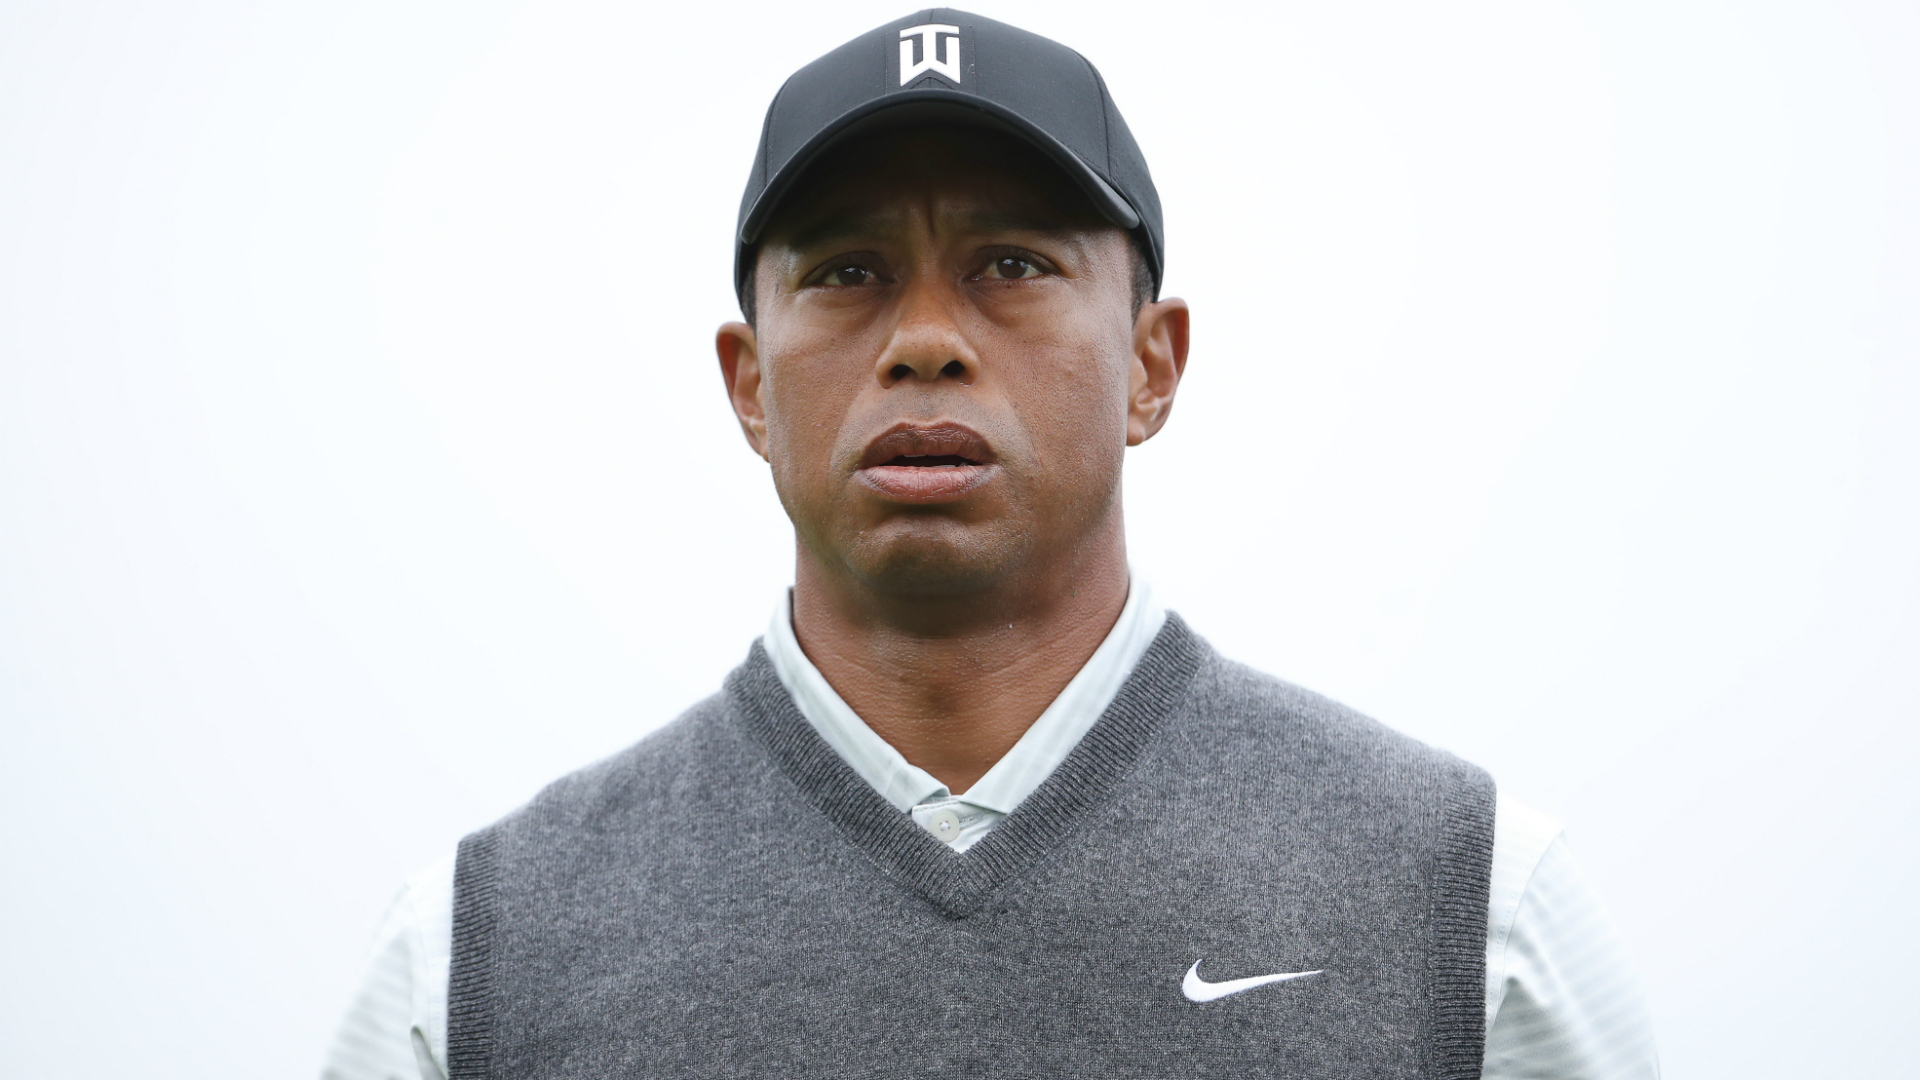 Tiger Woods pleased with fighting start at Pebble Beach